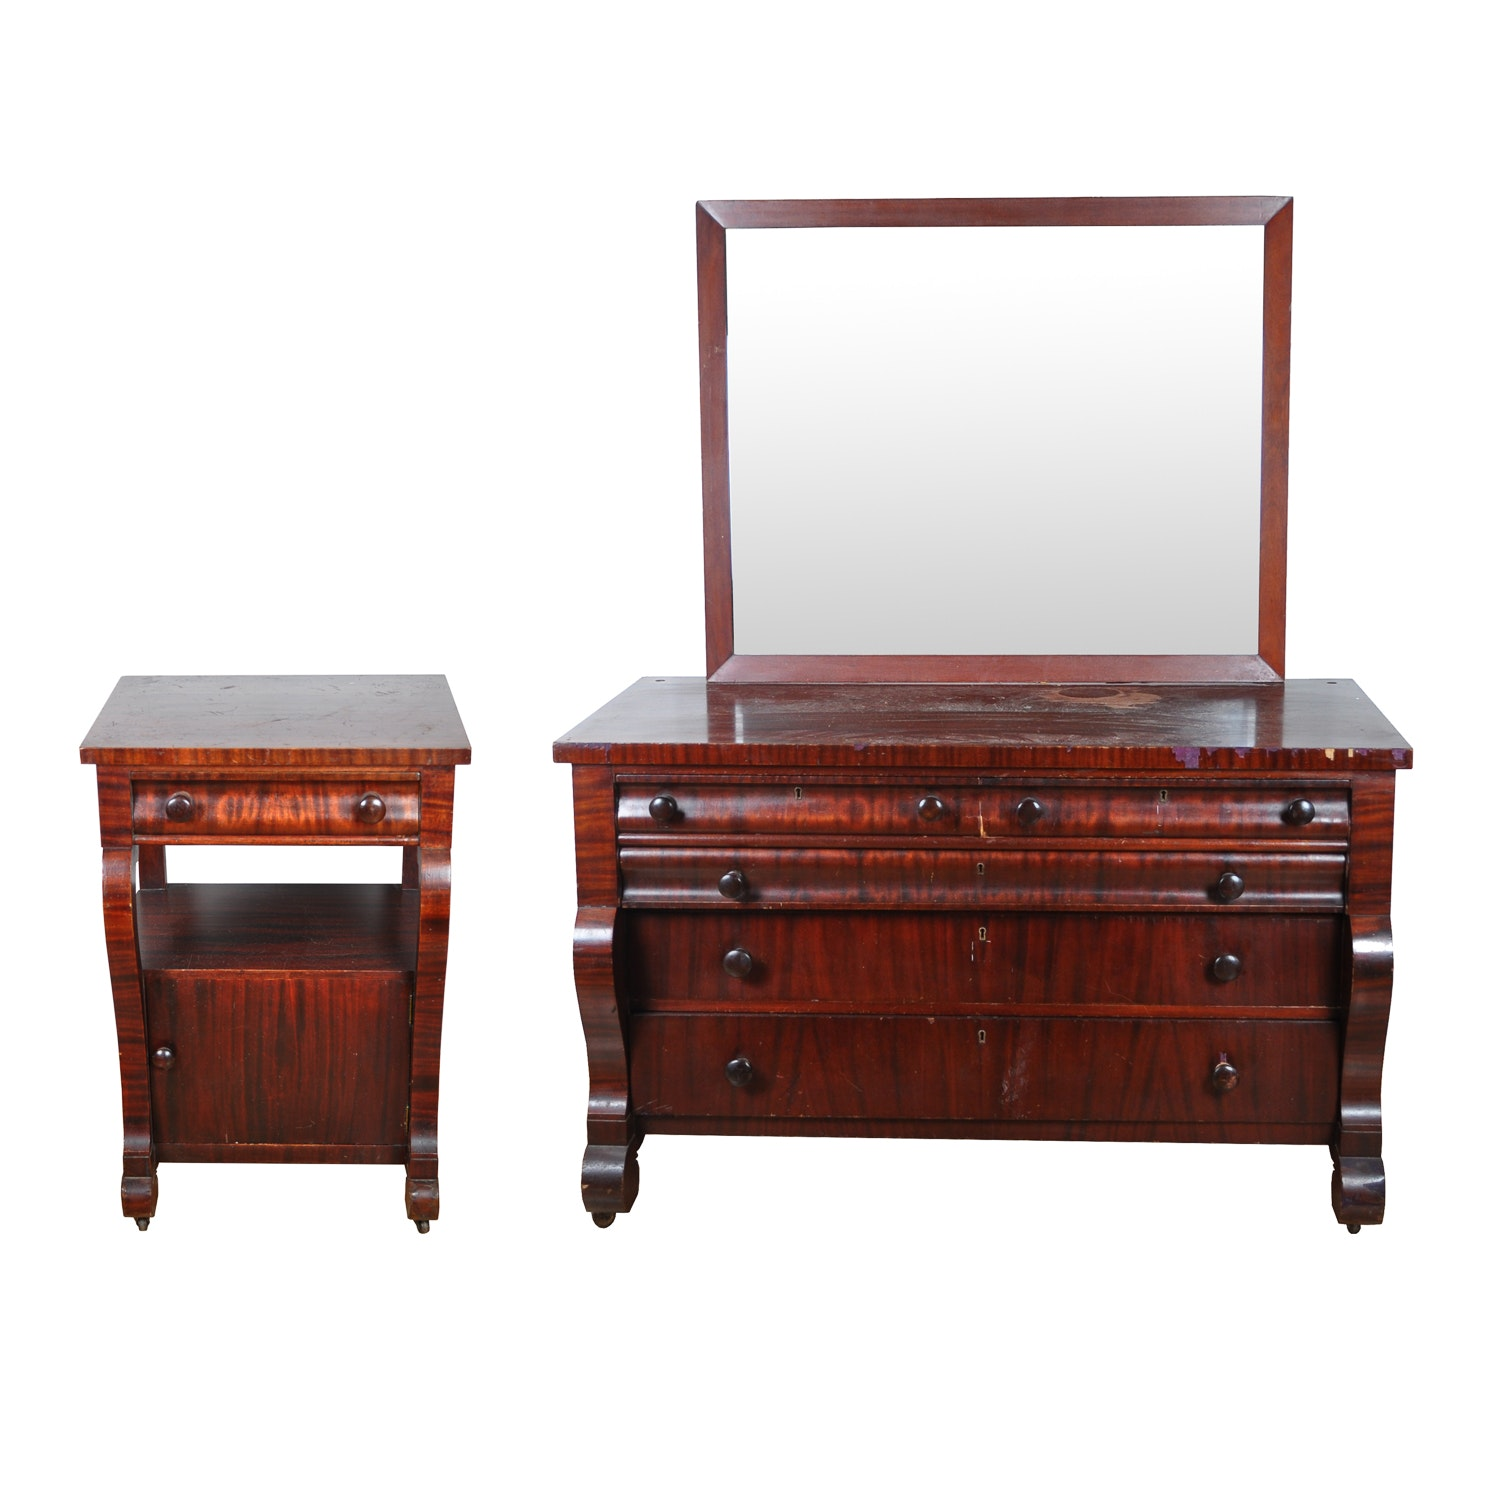 Antique Empire Style Mirror-Backed Dresser and Nightstand